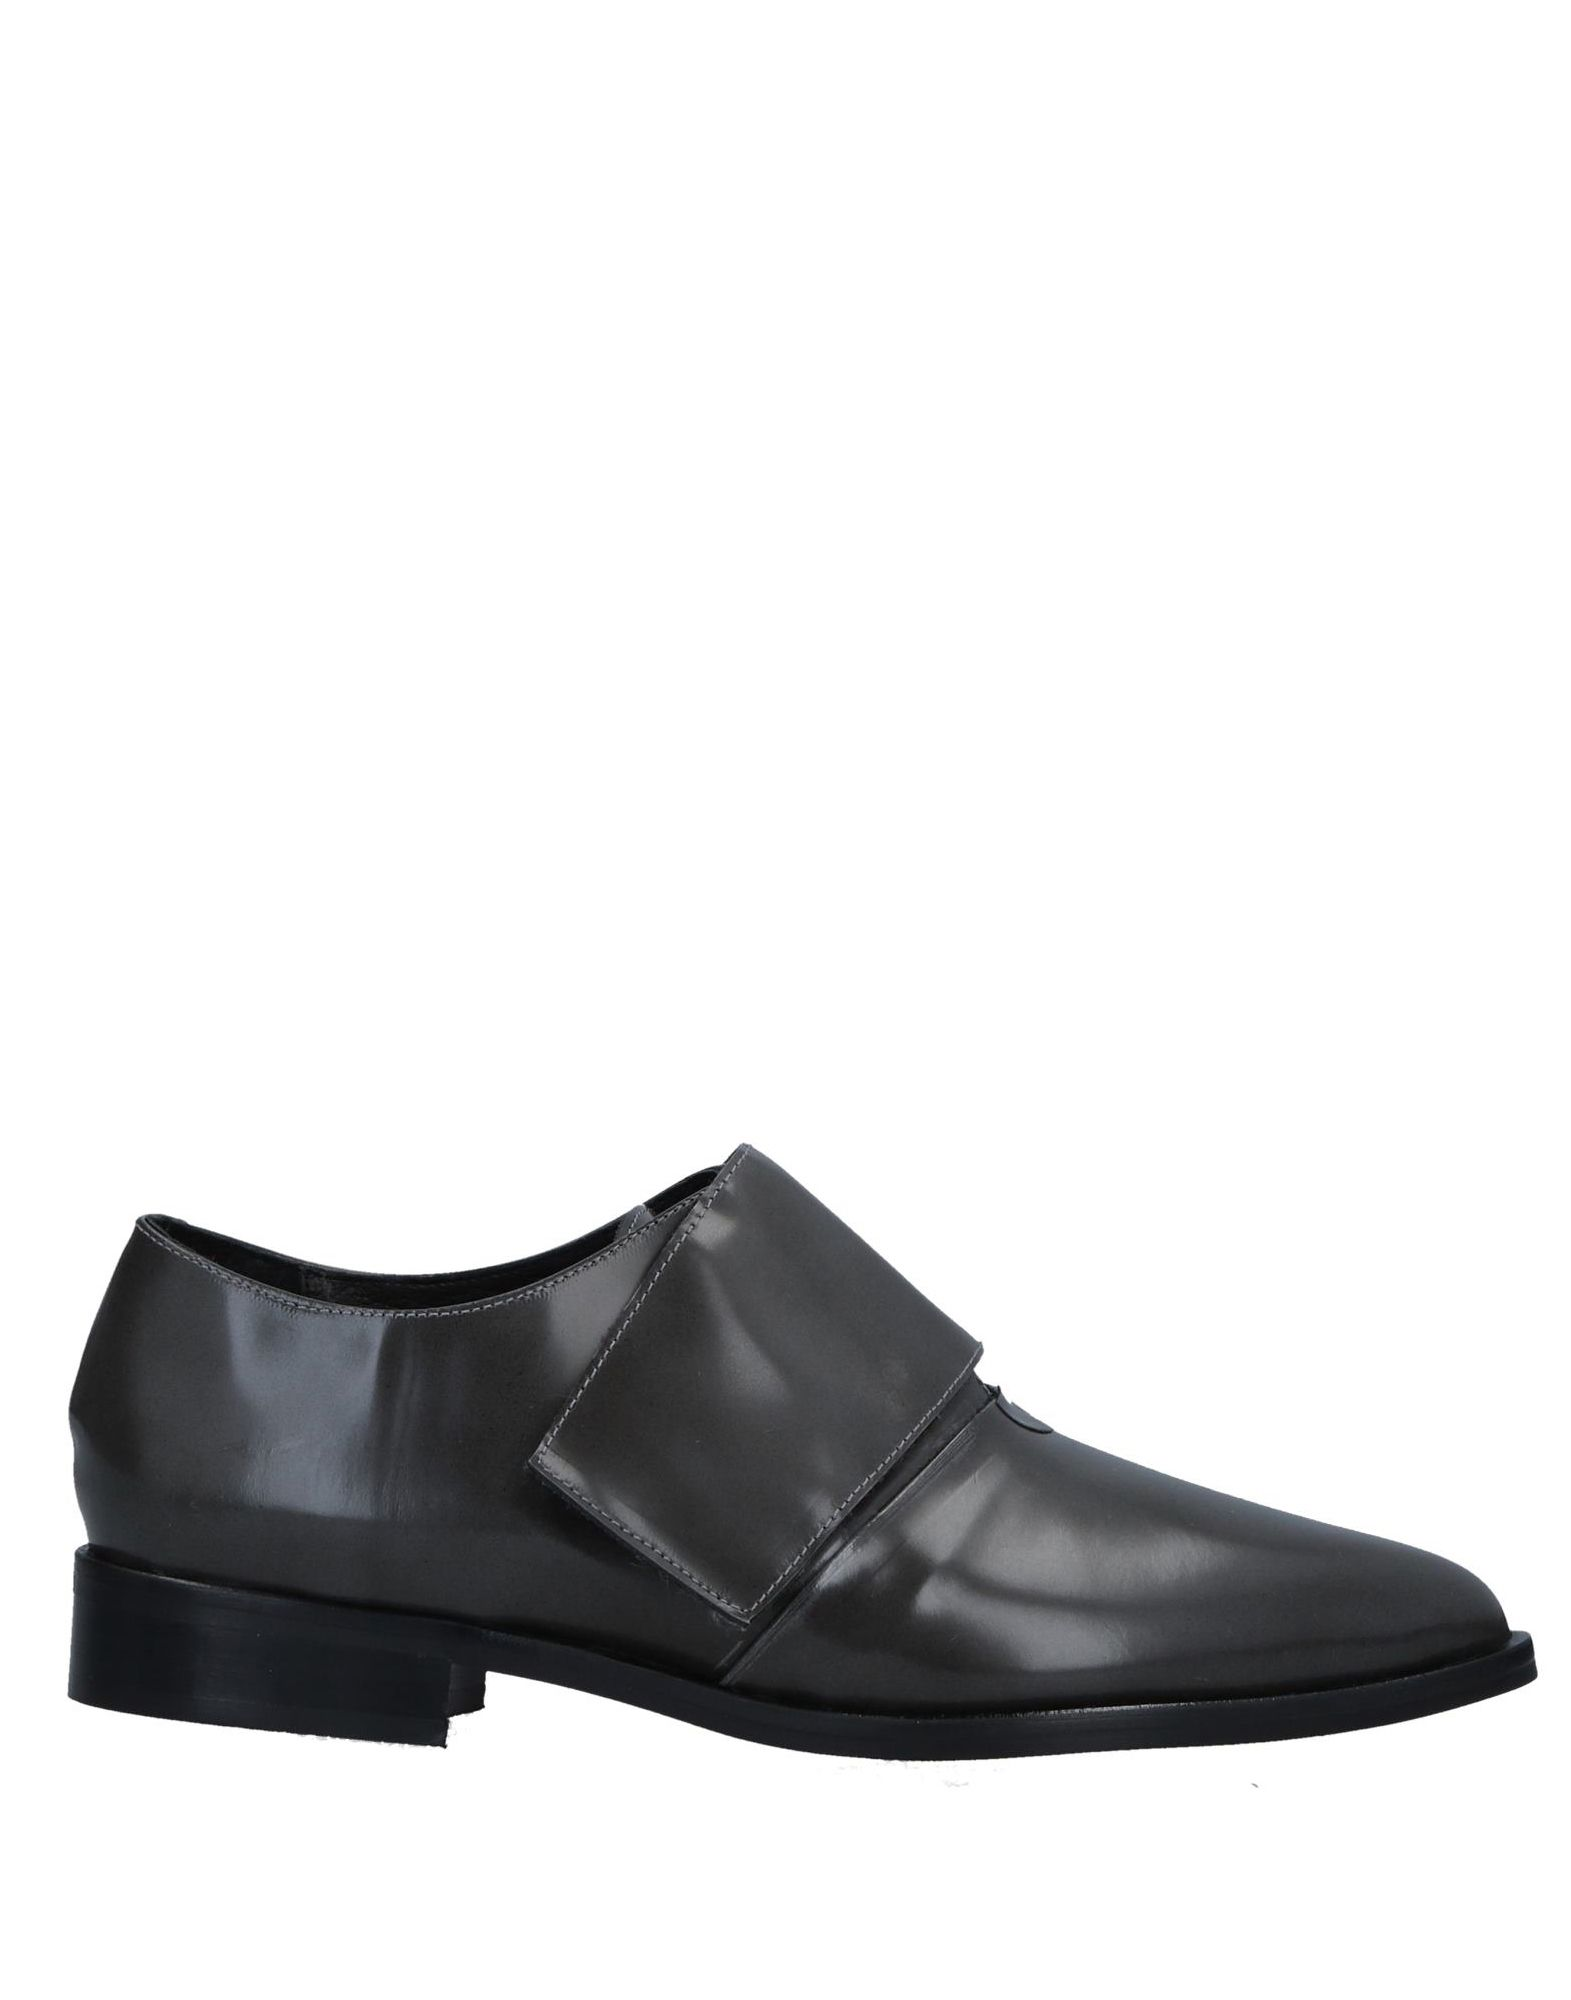 Maison Shoeshibar Shoeshibar Loafers - Women Maison Shoeshibar Shoeshibar Loafers online on  Australia - 11537964DK 15c6a3